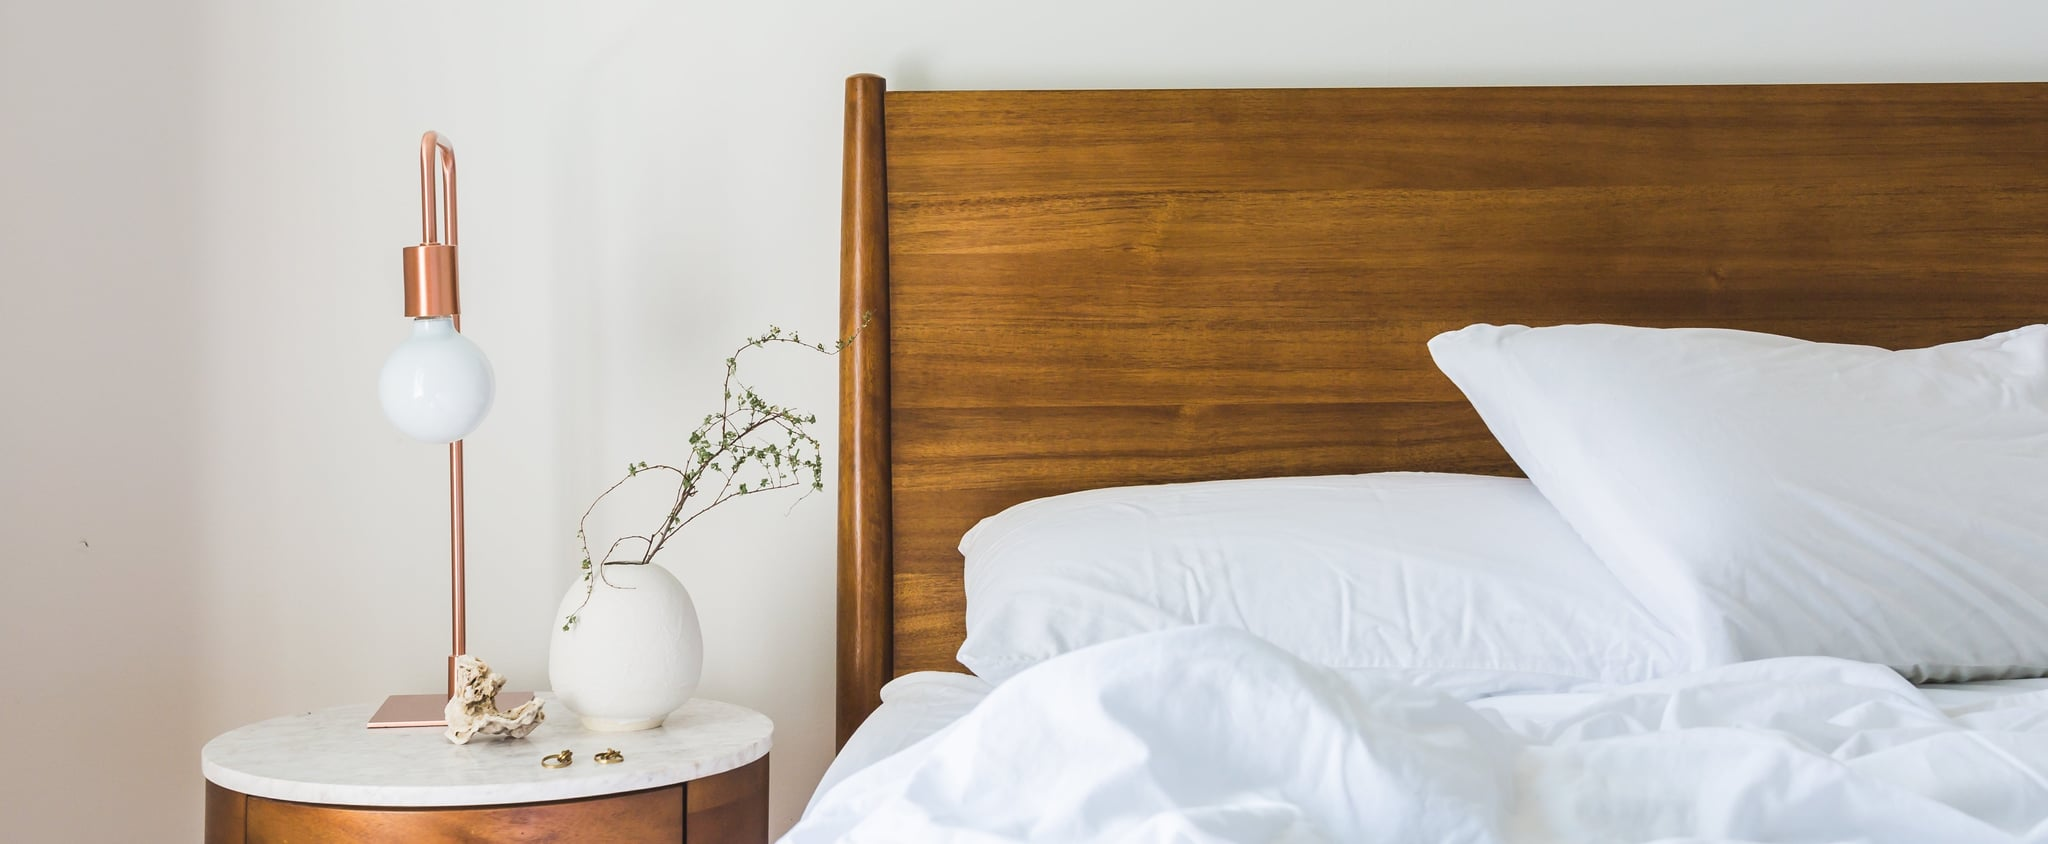 Best Bed Sheets to Stay Cool